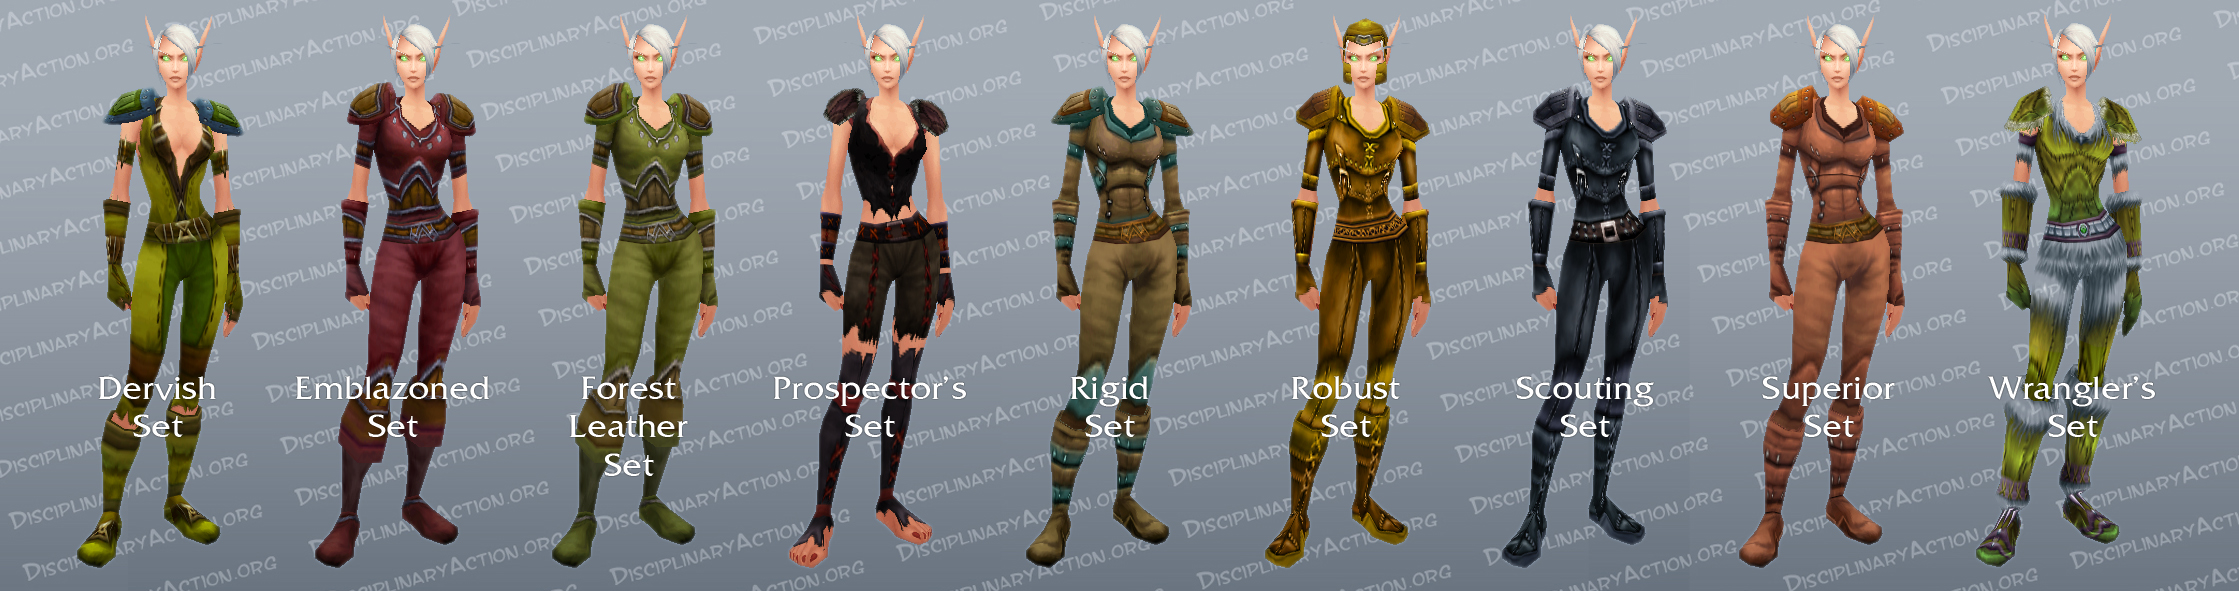 Green Leather Sets iLevel 20-30 (c) Disciplinary Action & Illustrated Leather Transmogrification Guide: Monk Druid Hunter ...